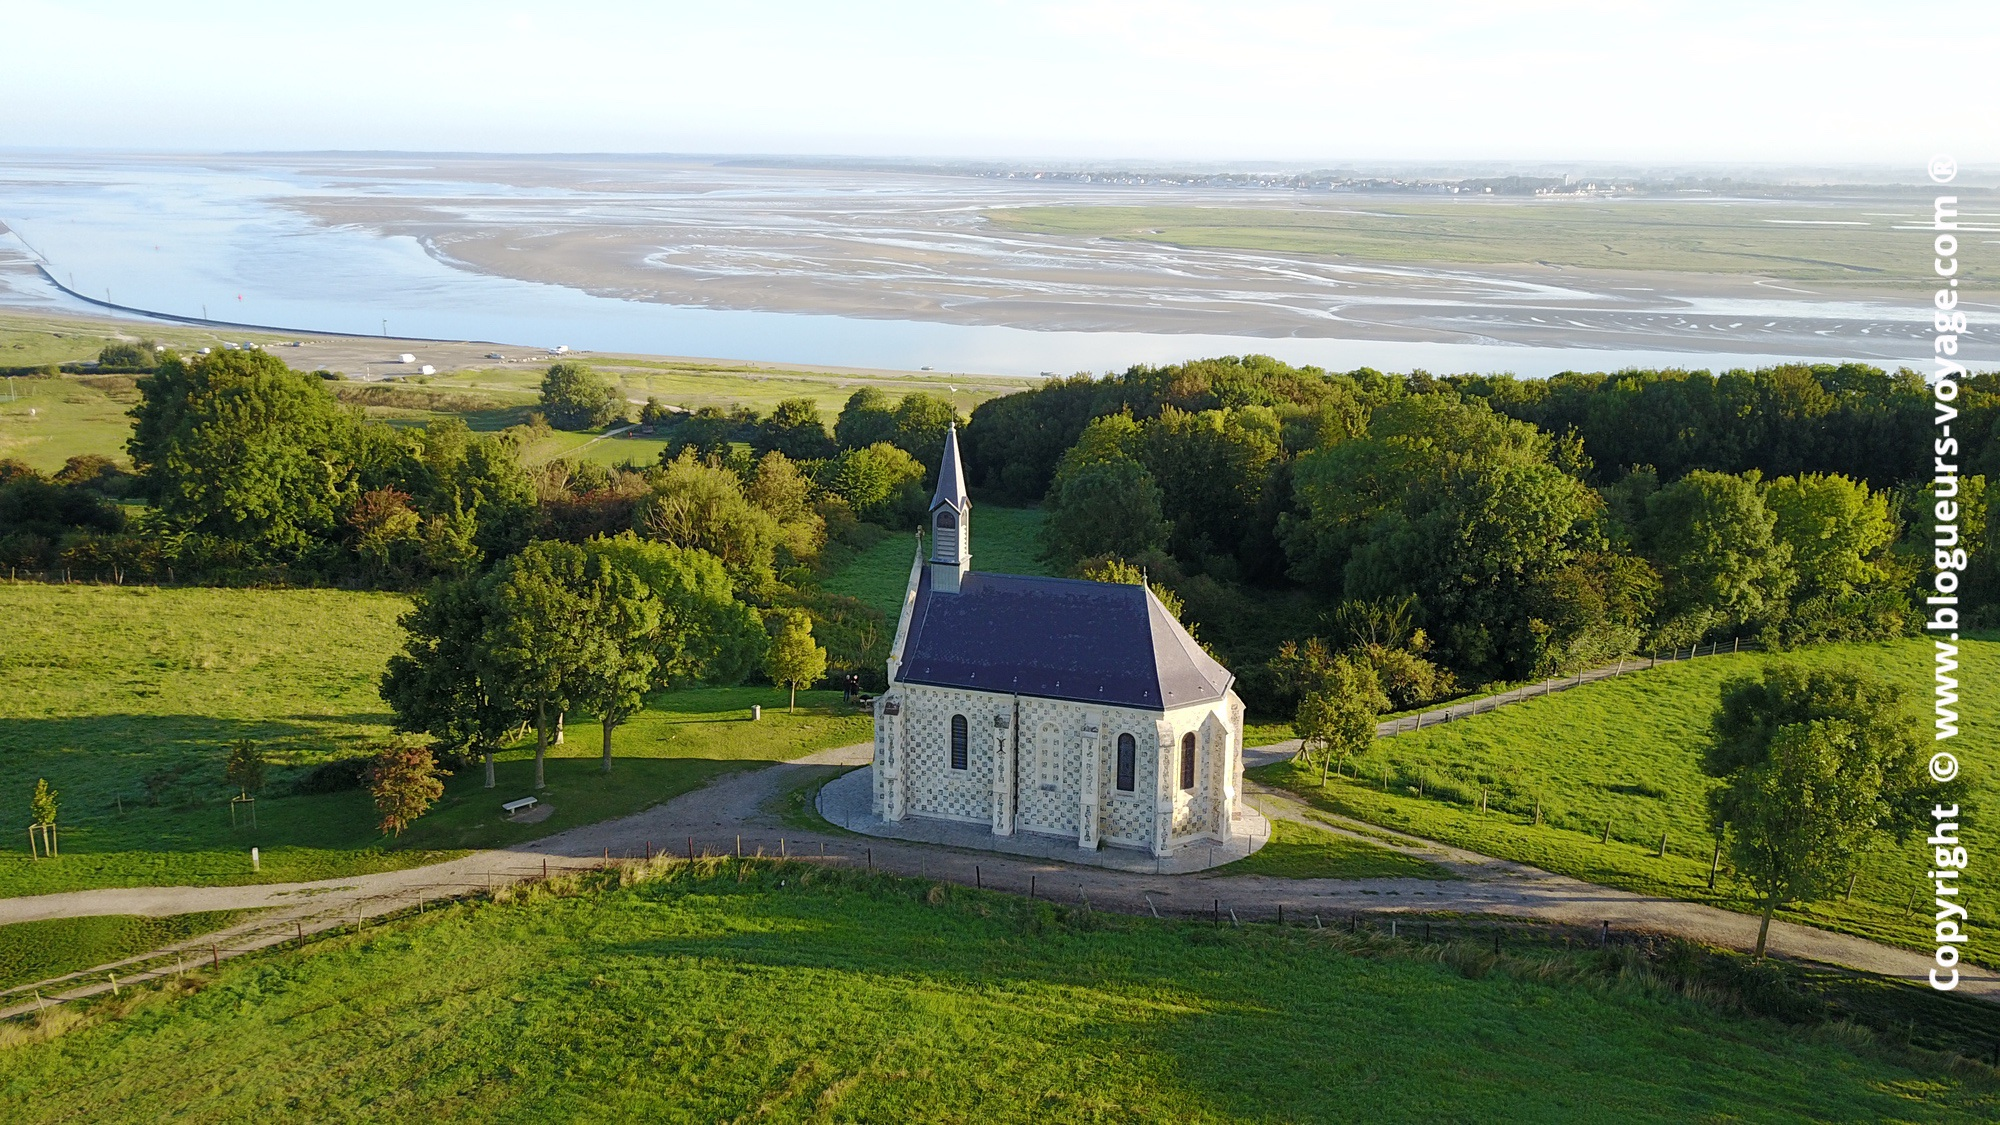 baie-somme-saint-valery-sur-somme-drone-41